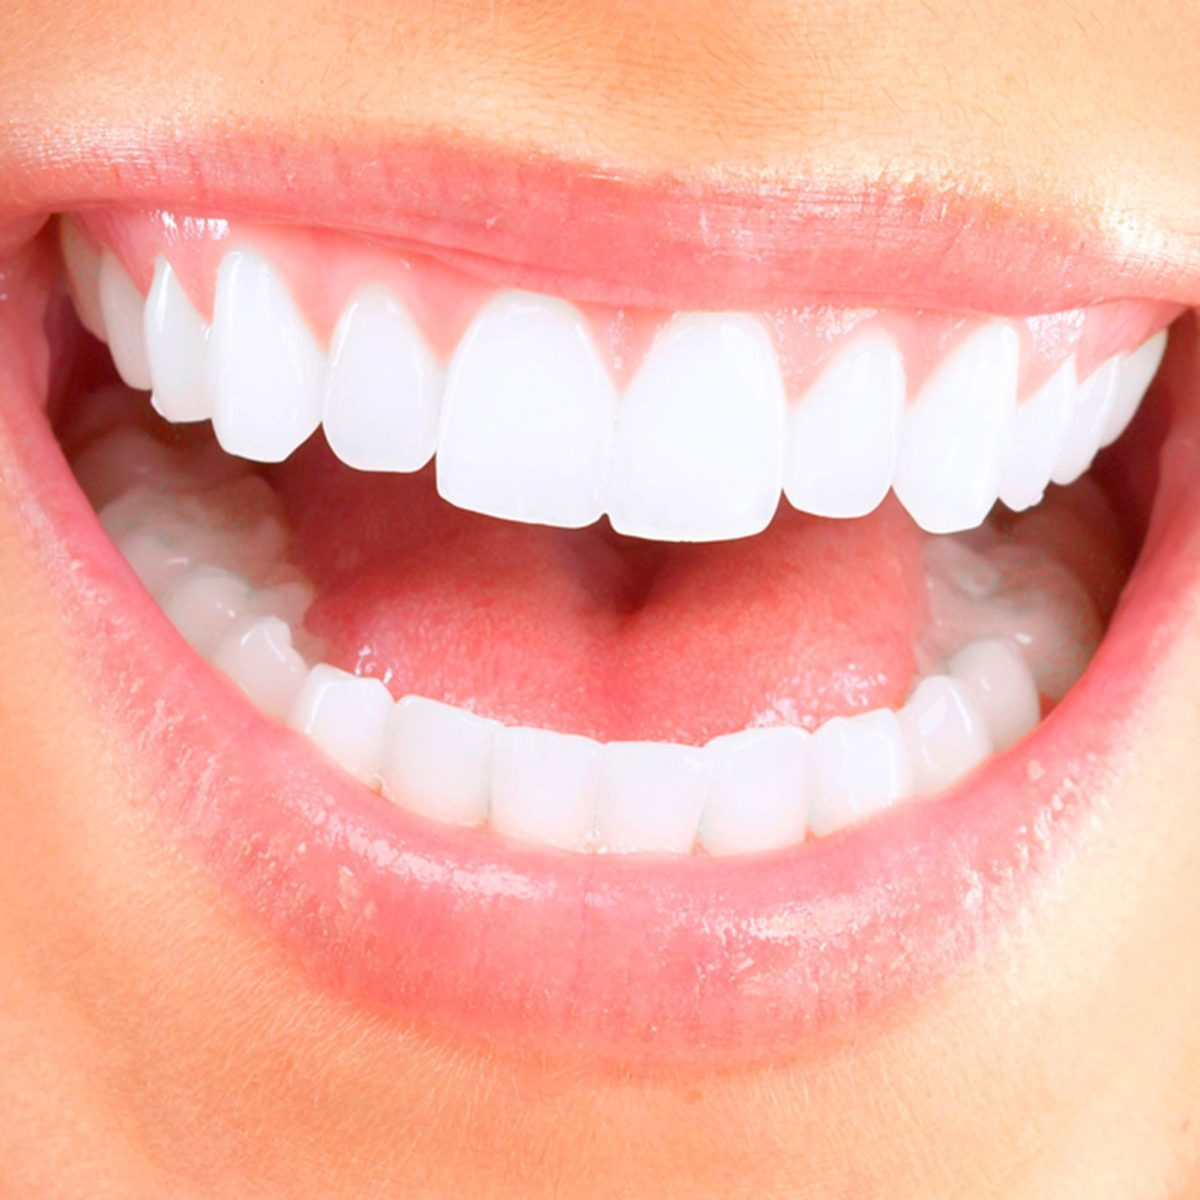 White Gums After Tooth Extraction